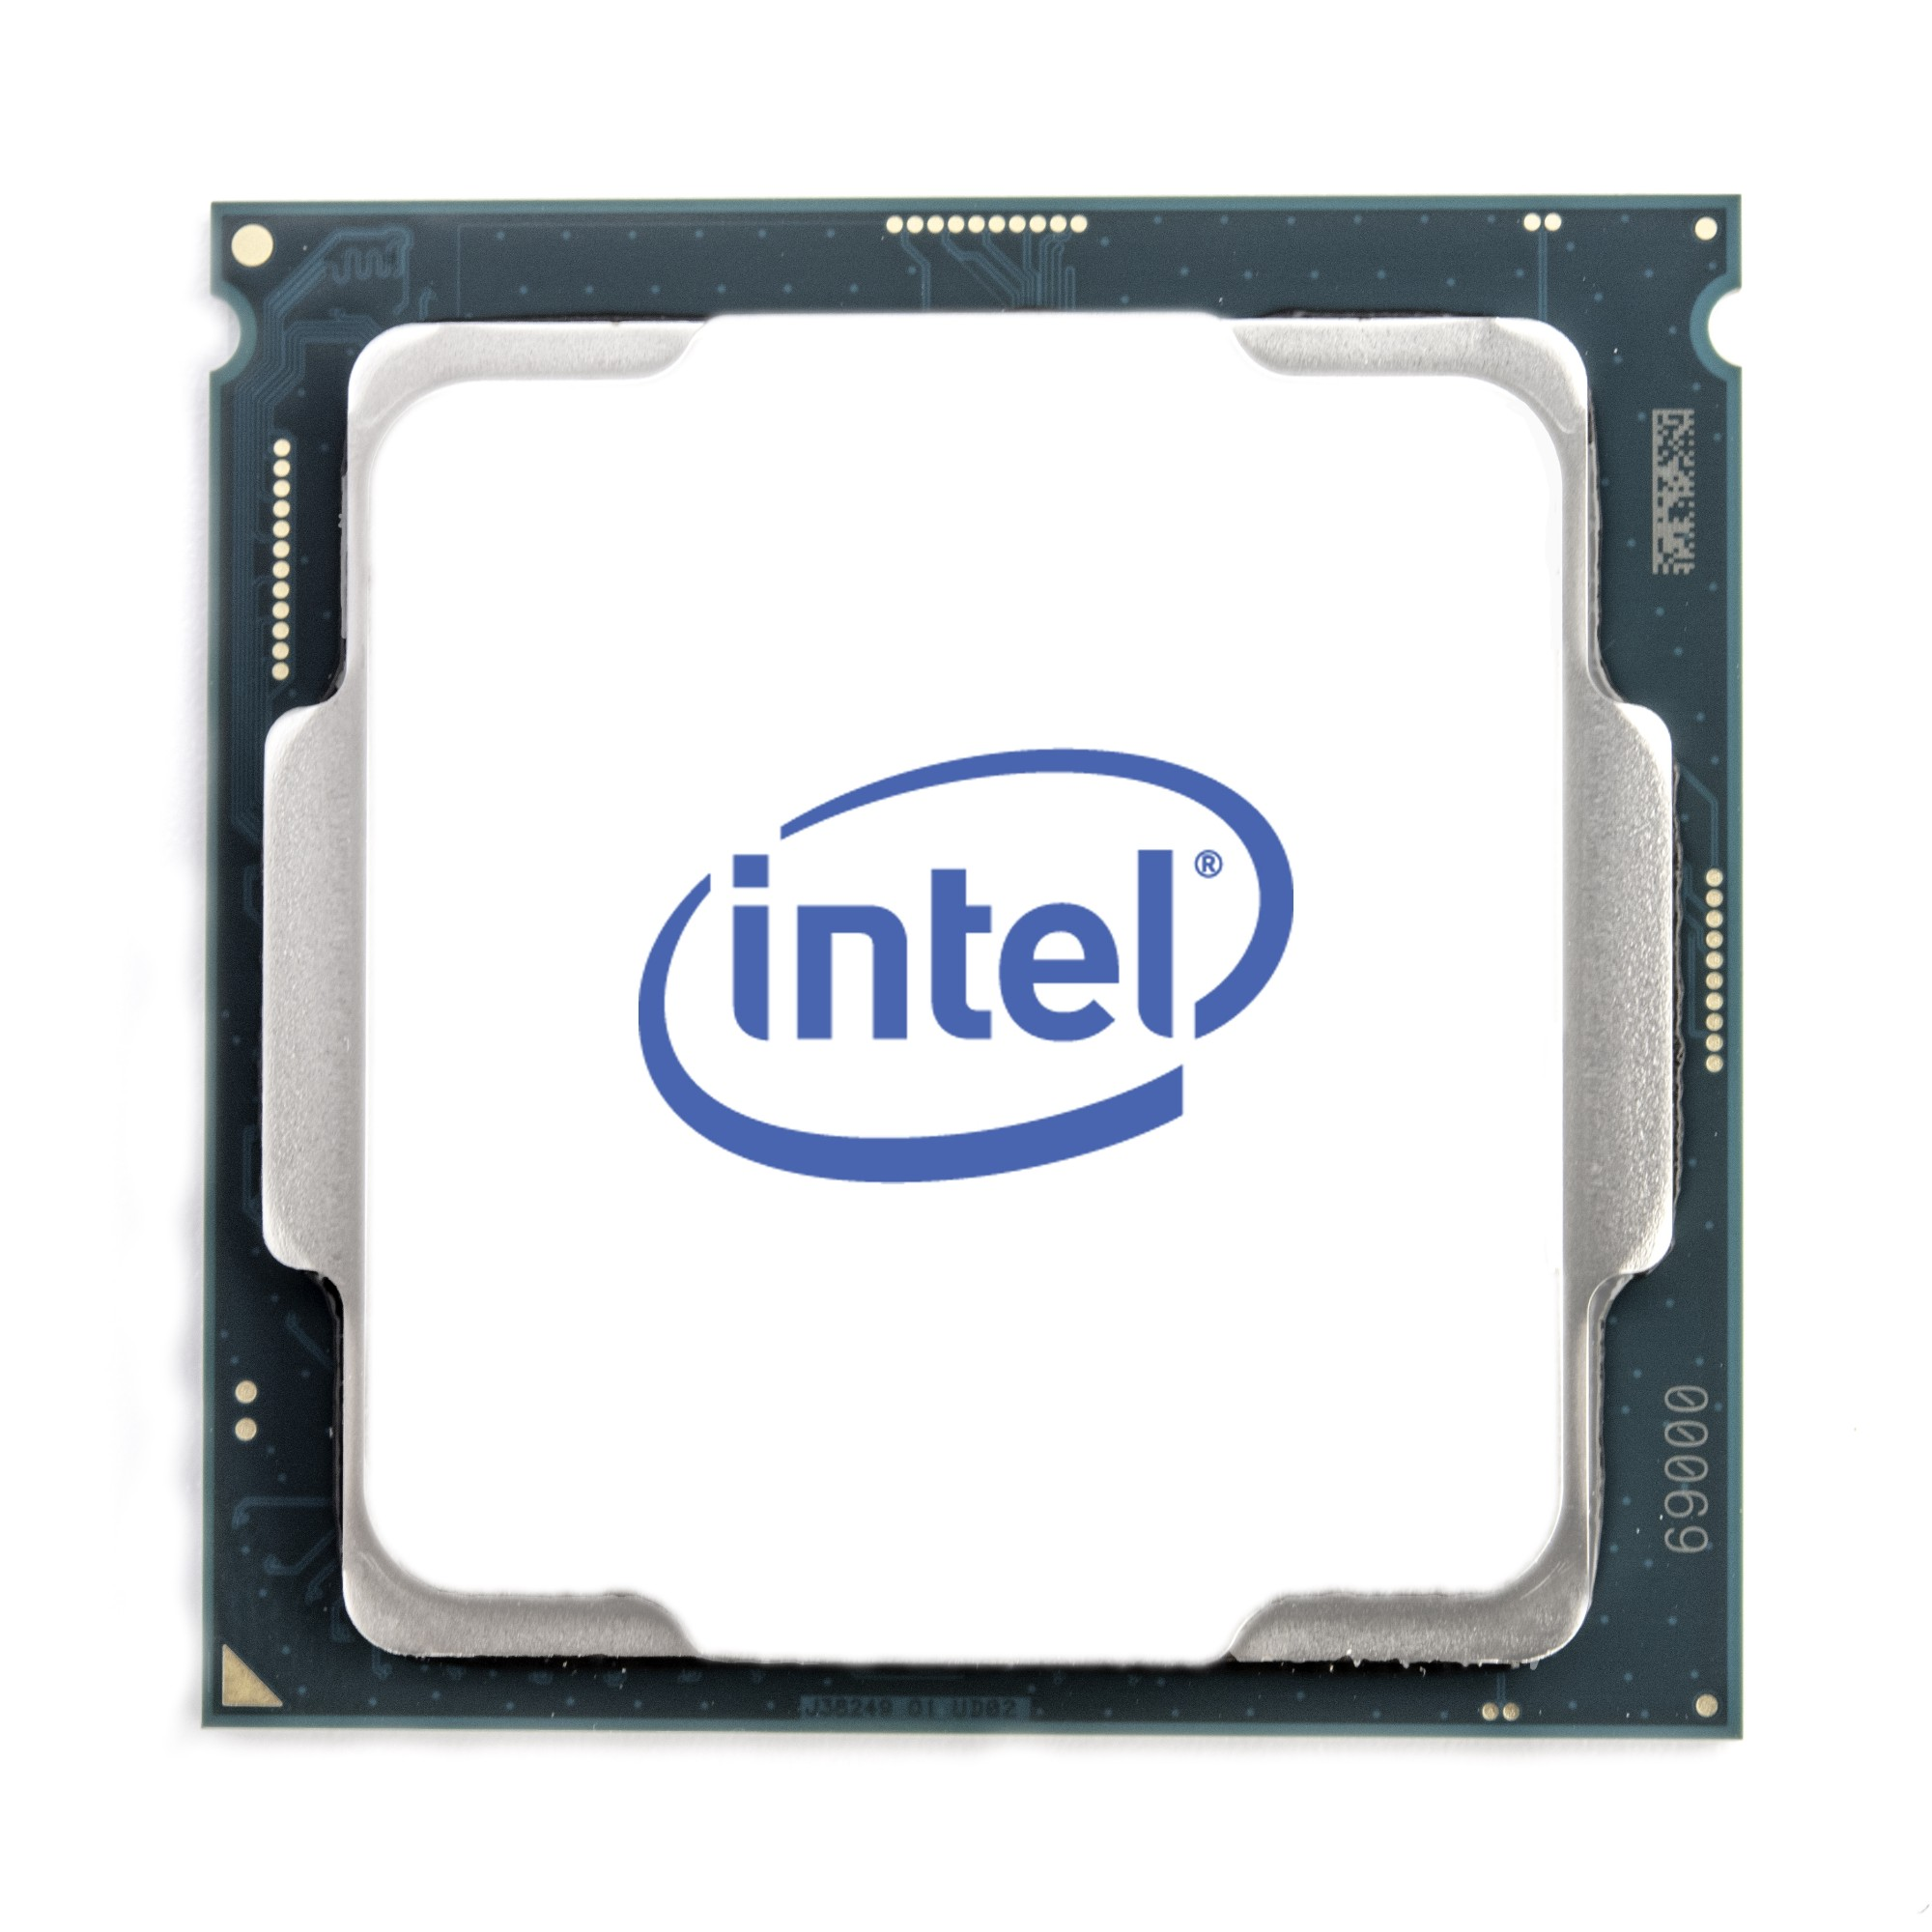 Intel Core i3-10100 processor 3.6 GHz 6 MB Smart Cache